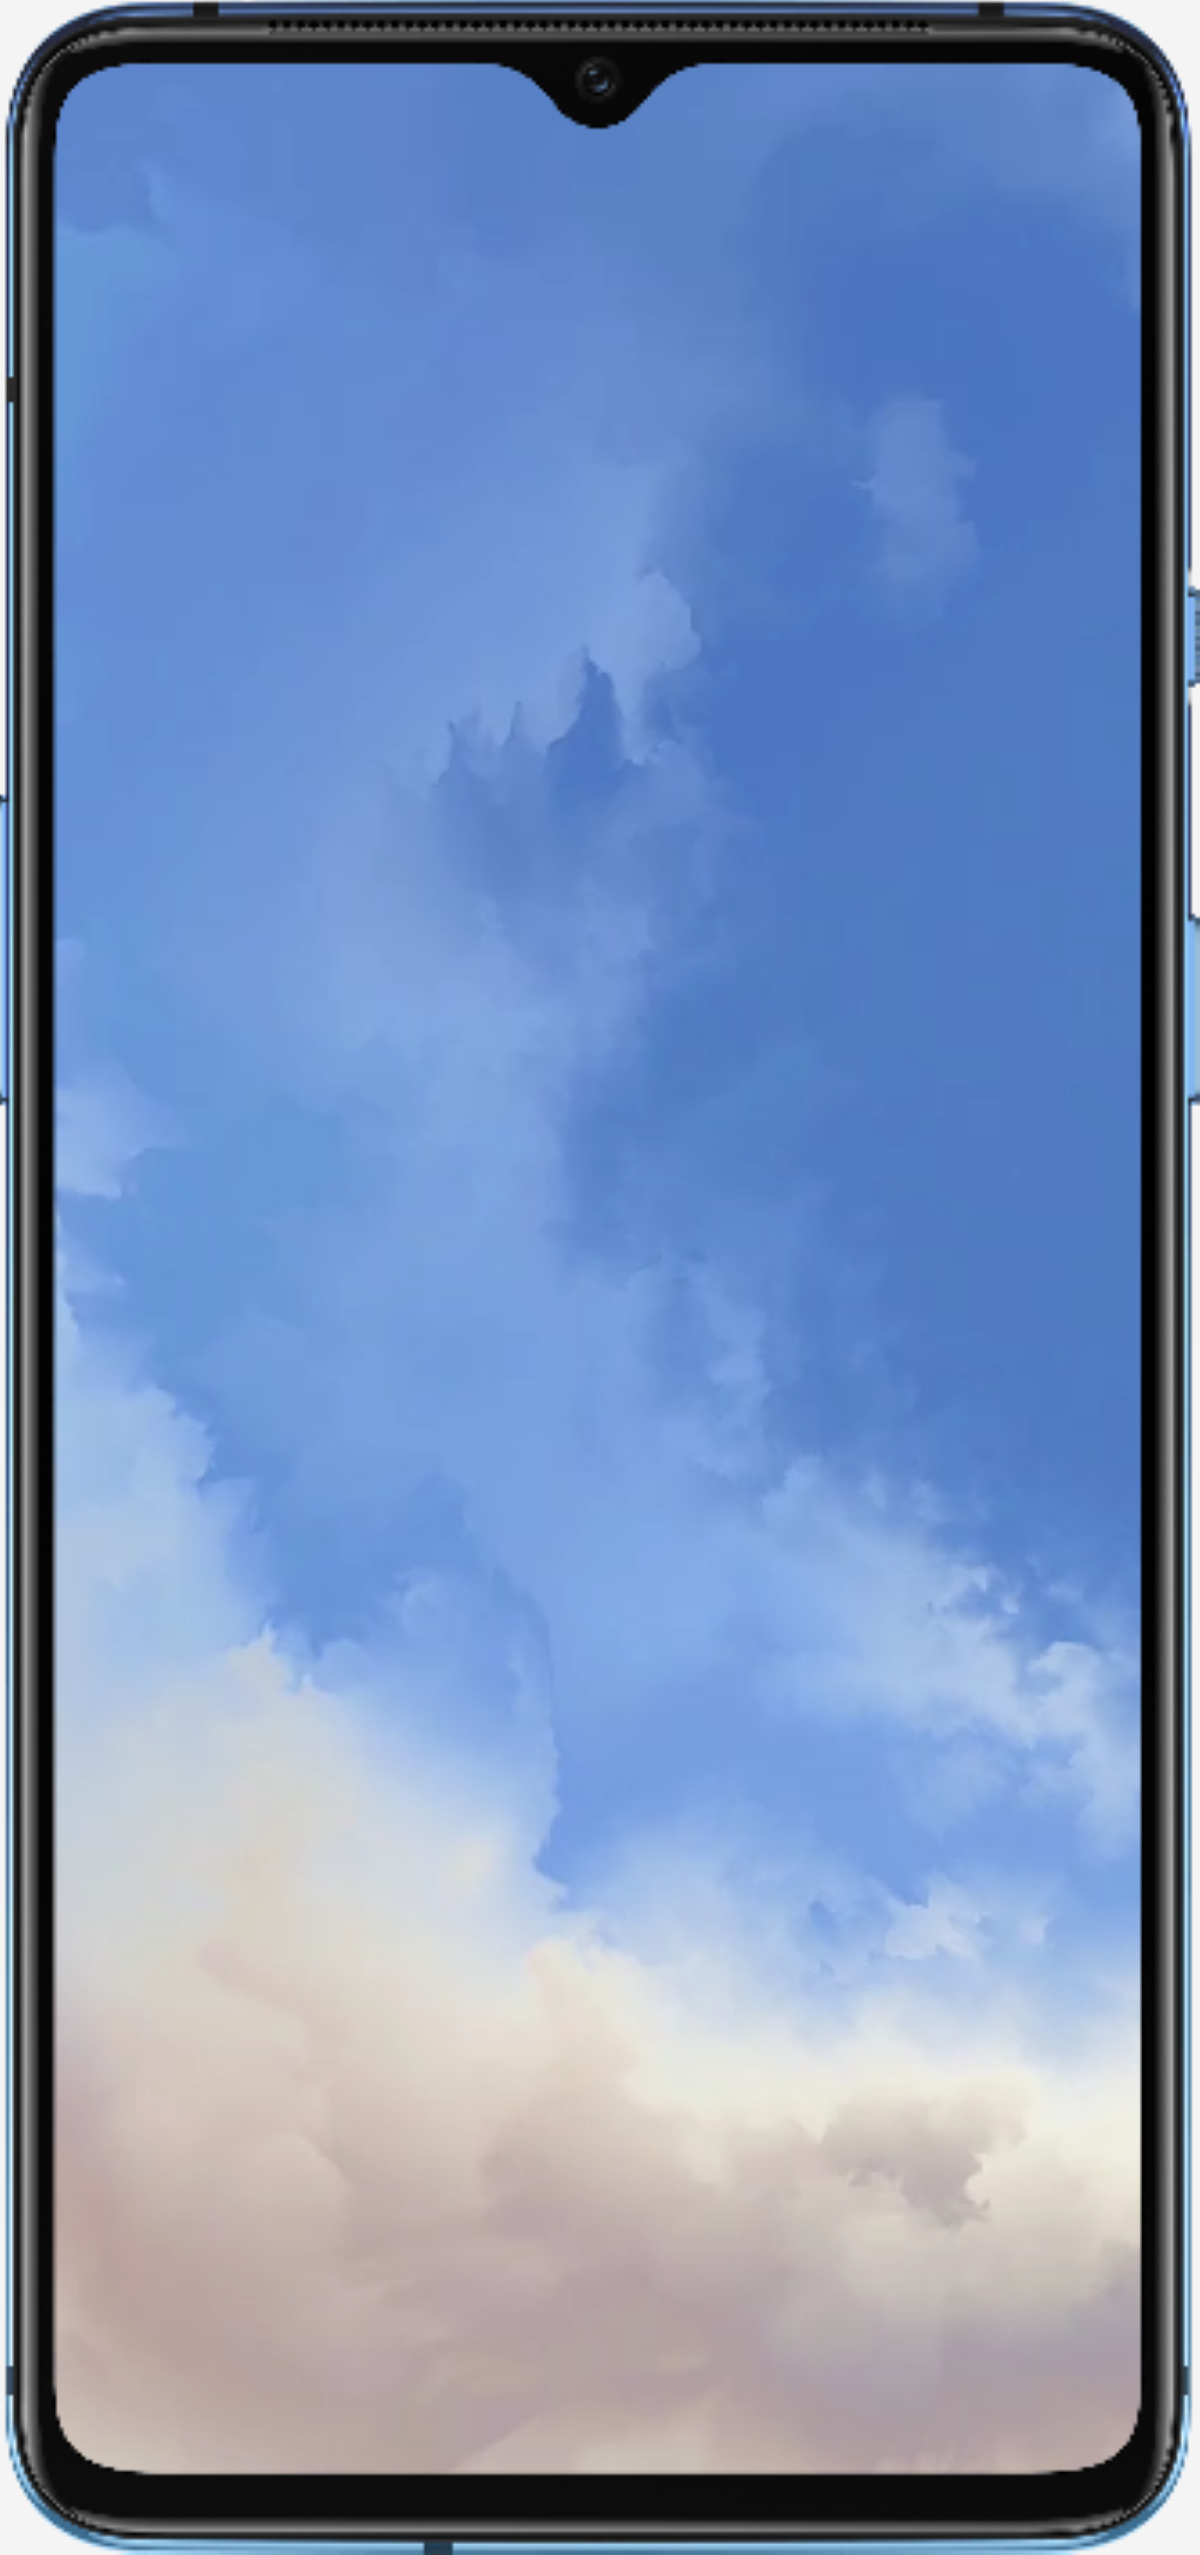 OnePlus 7T - 6.55-inch Fluid AMOLED Capacitive Touchscreen Display